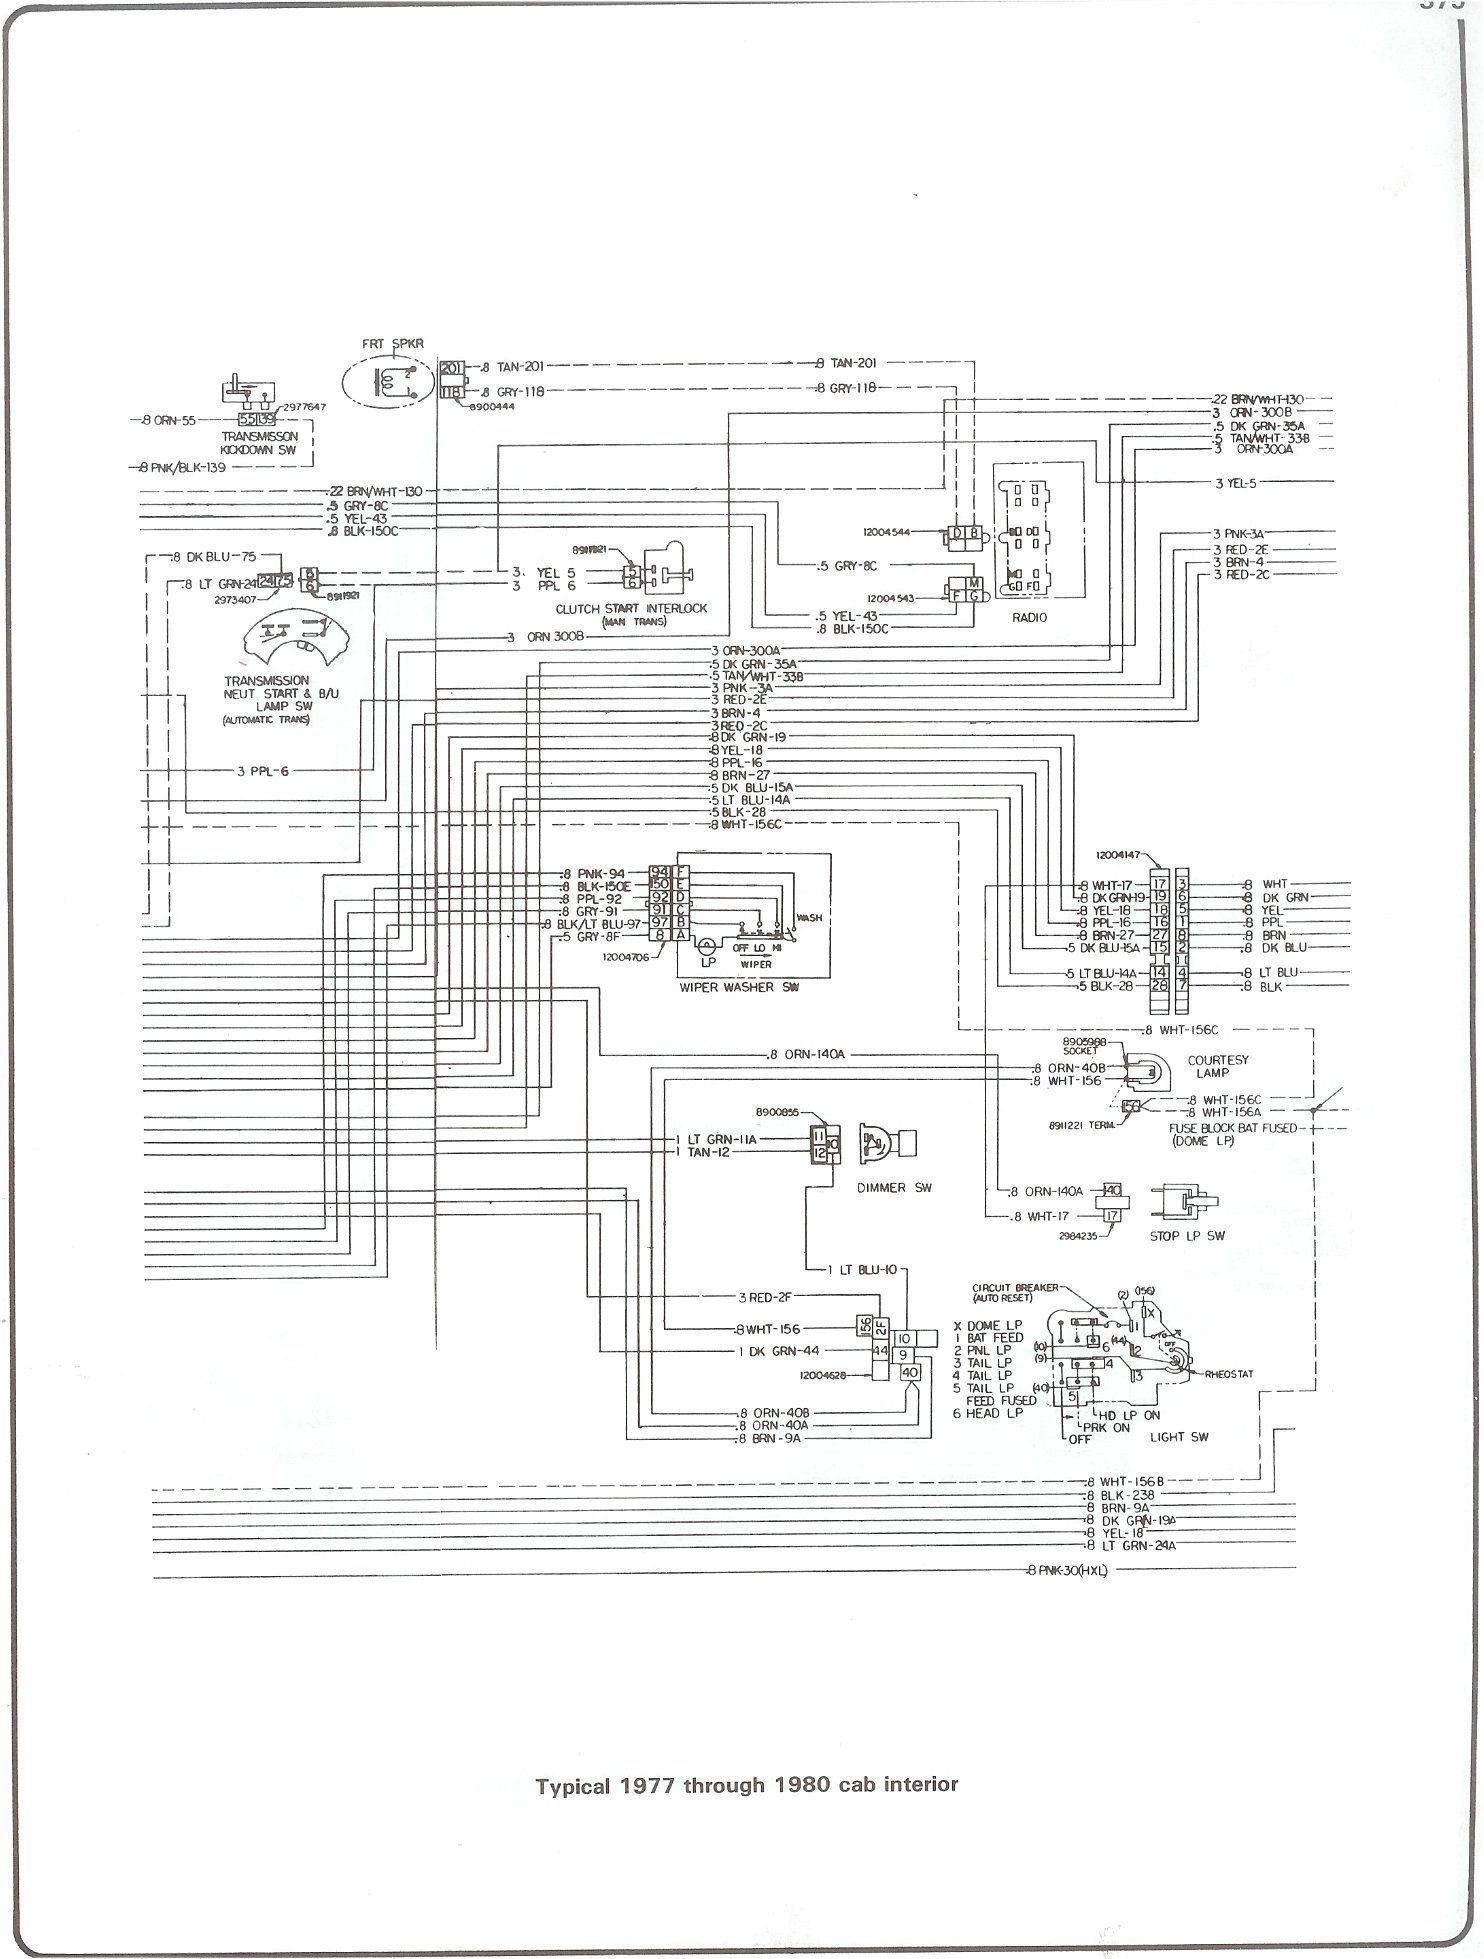 82 k10 ignition wiring diagram detailed wiring diagramcomplete 73 87 wiring diagrams ford electronic ignition wiring diagram 82 k10 ignition wiring diagram